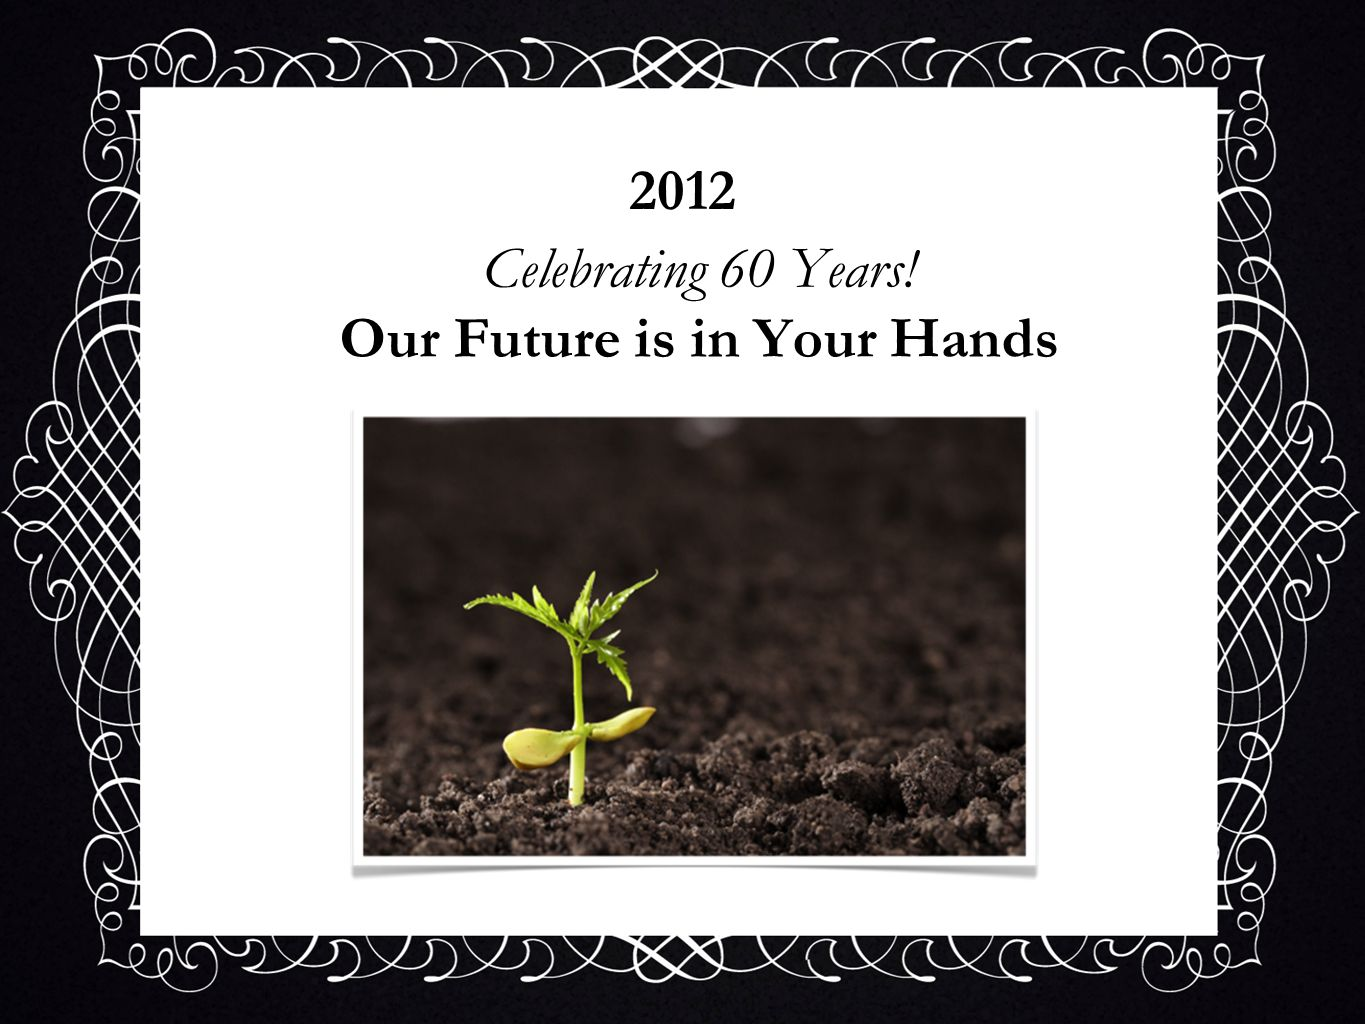 Celebrating 60 Years! Our Future is in Your Hands 2012